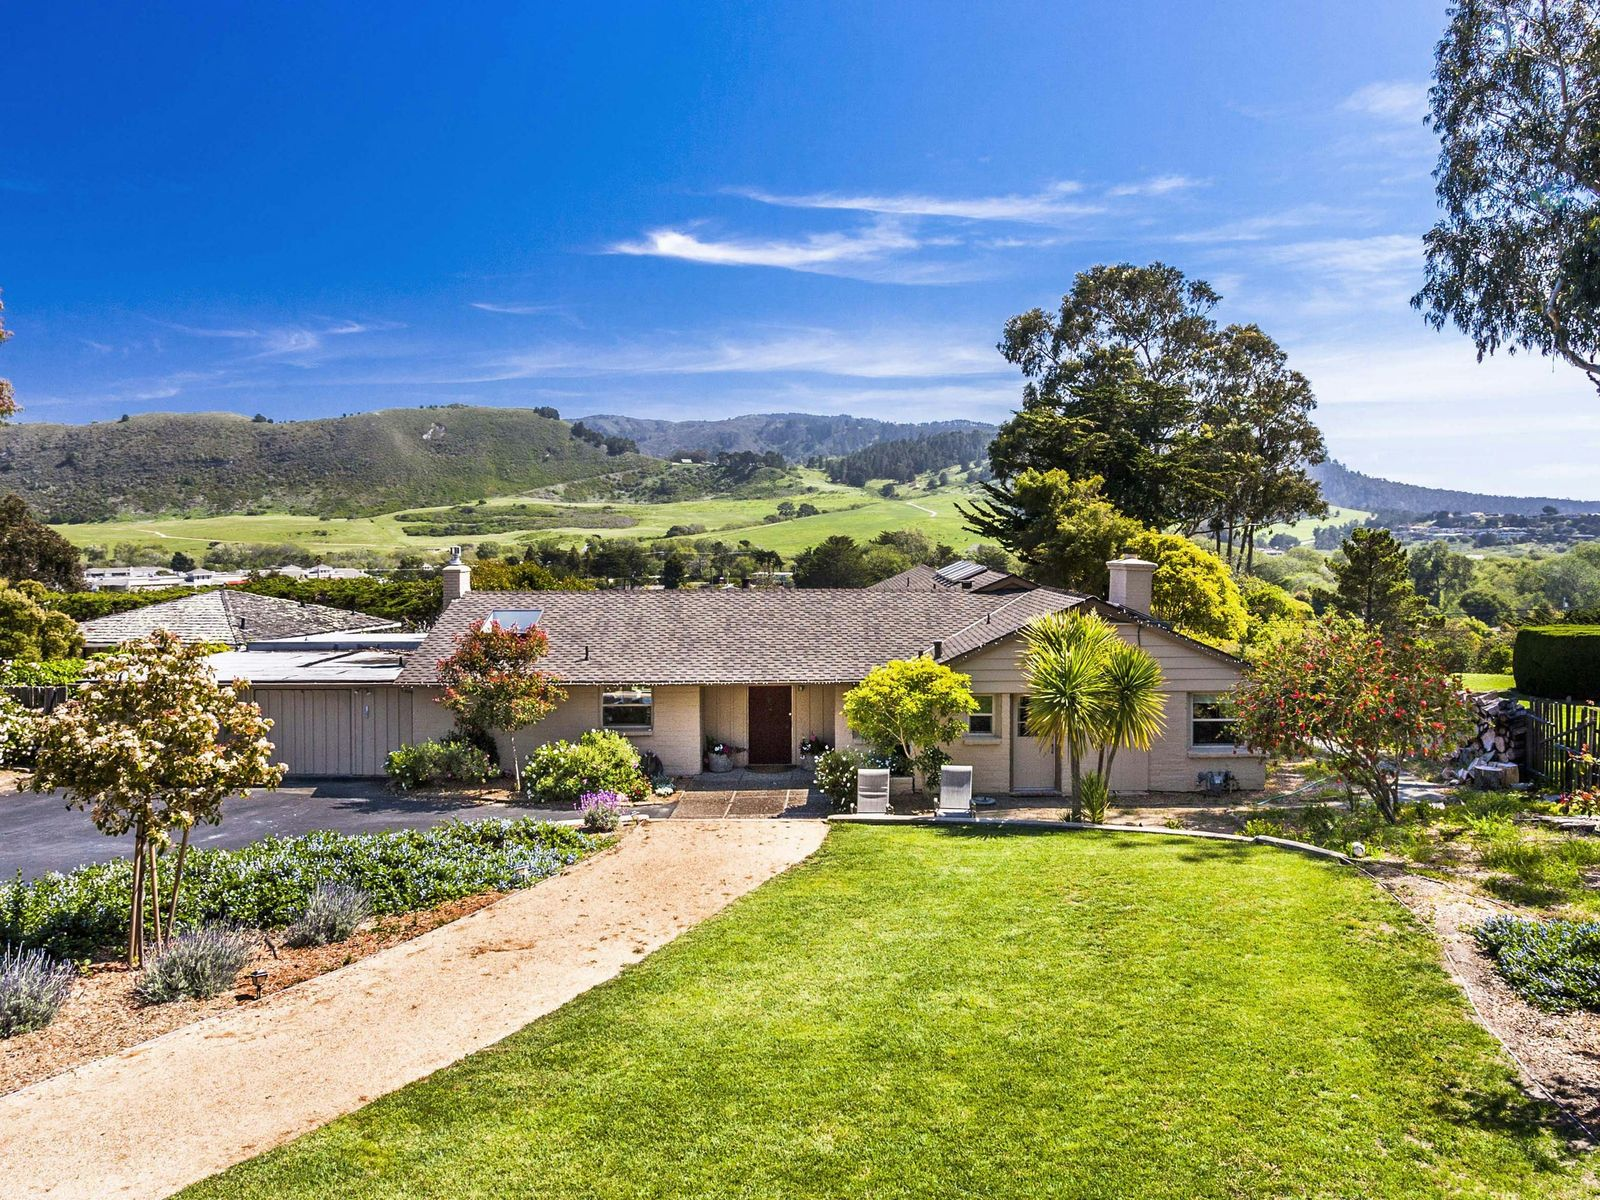 Carmel View Rancher, Carmel CA Single Family Home - Monterey Real Estate